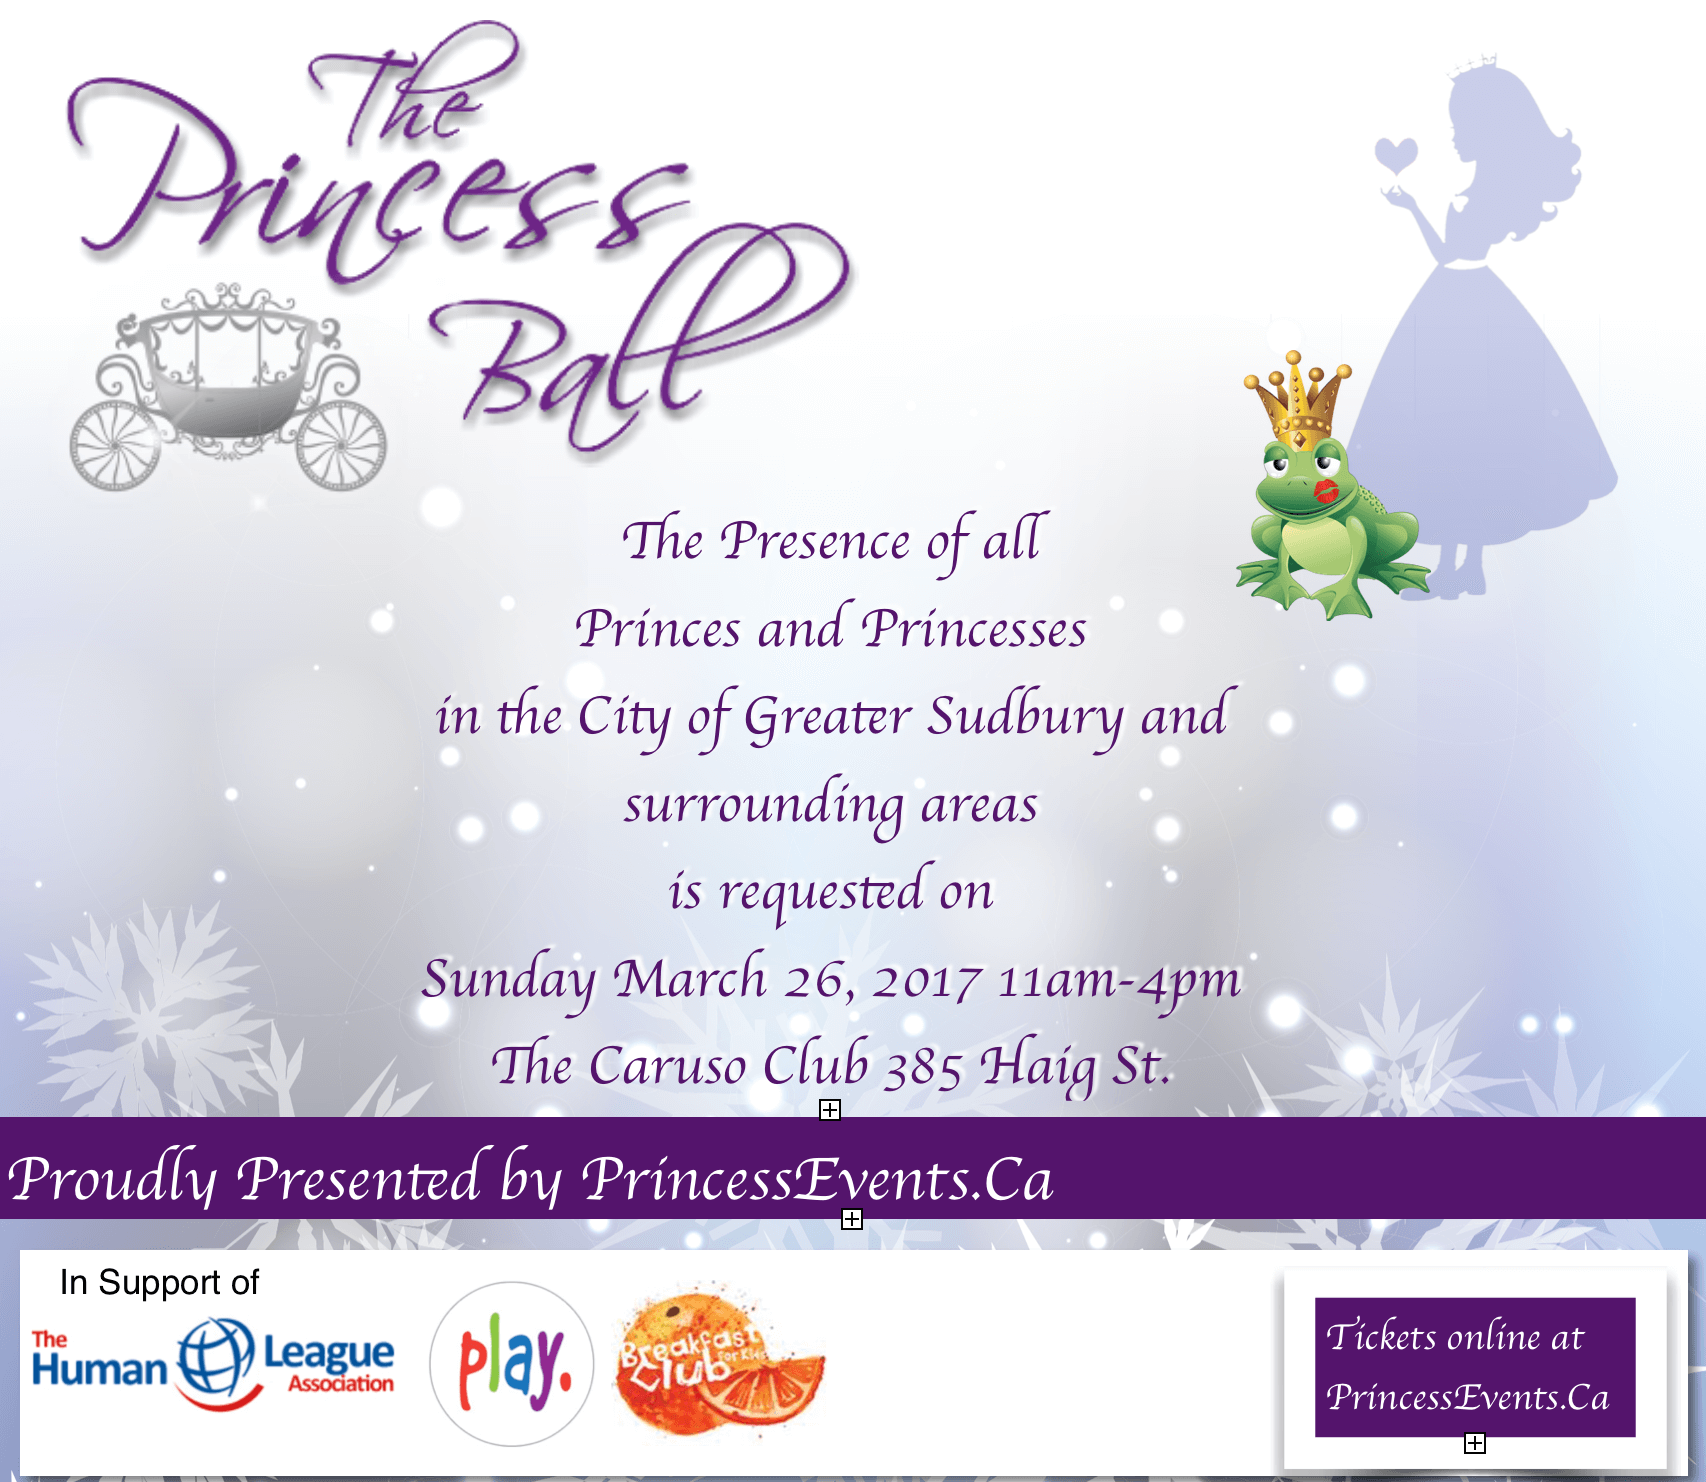 The Princess Ball Sudbury